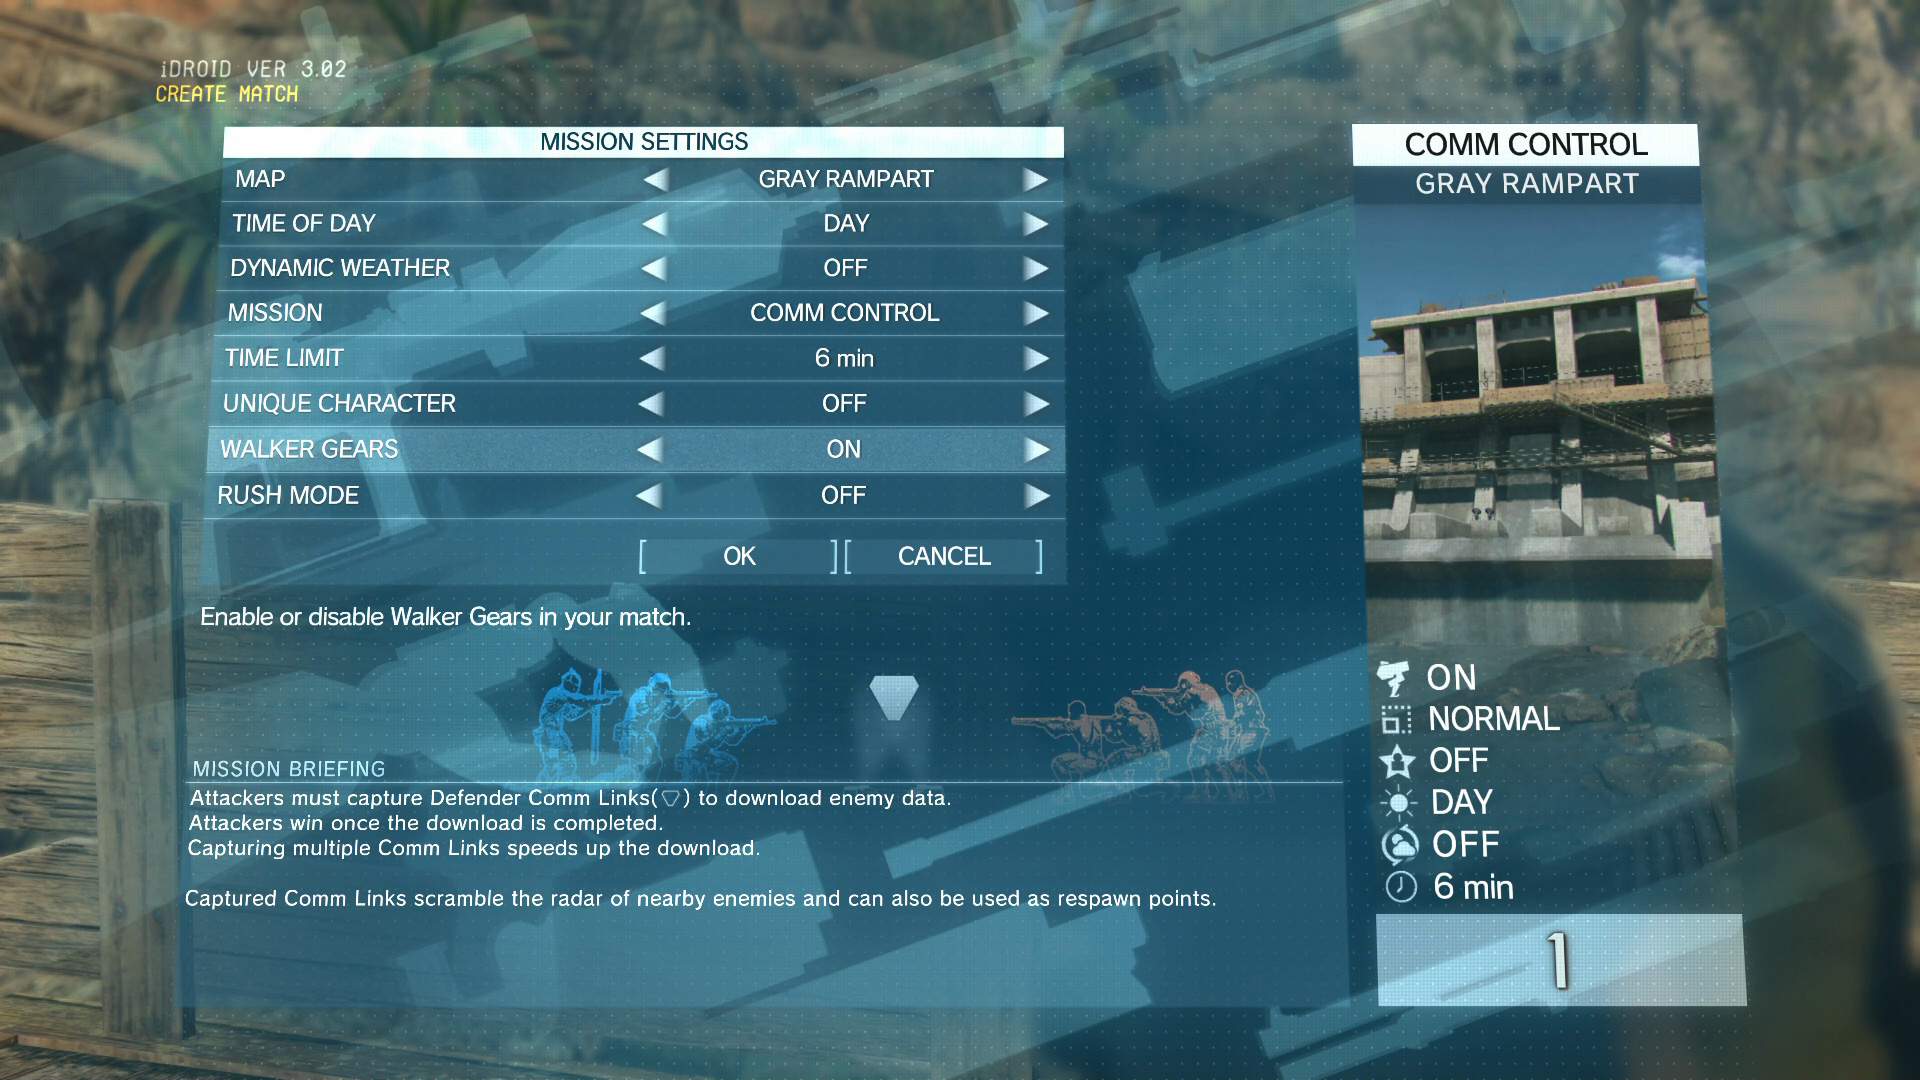 Metal-Gear-Online-Settings-Walker-Gears